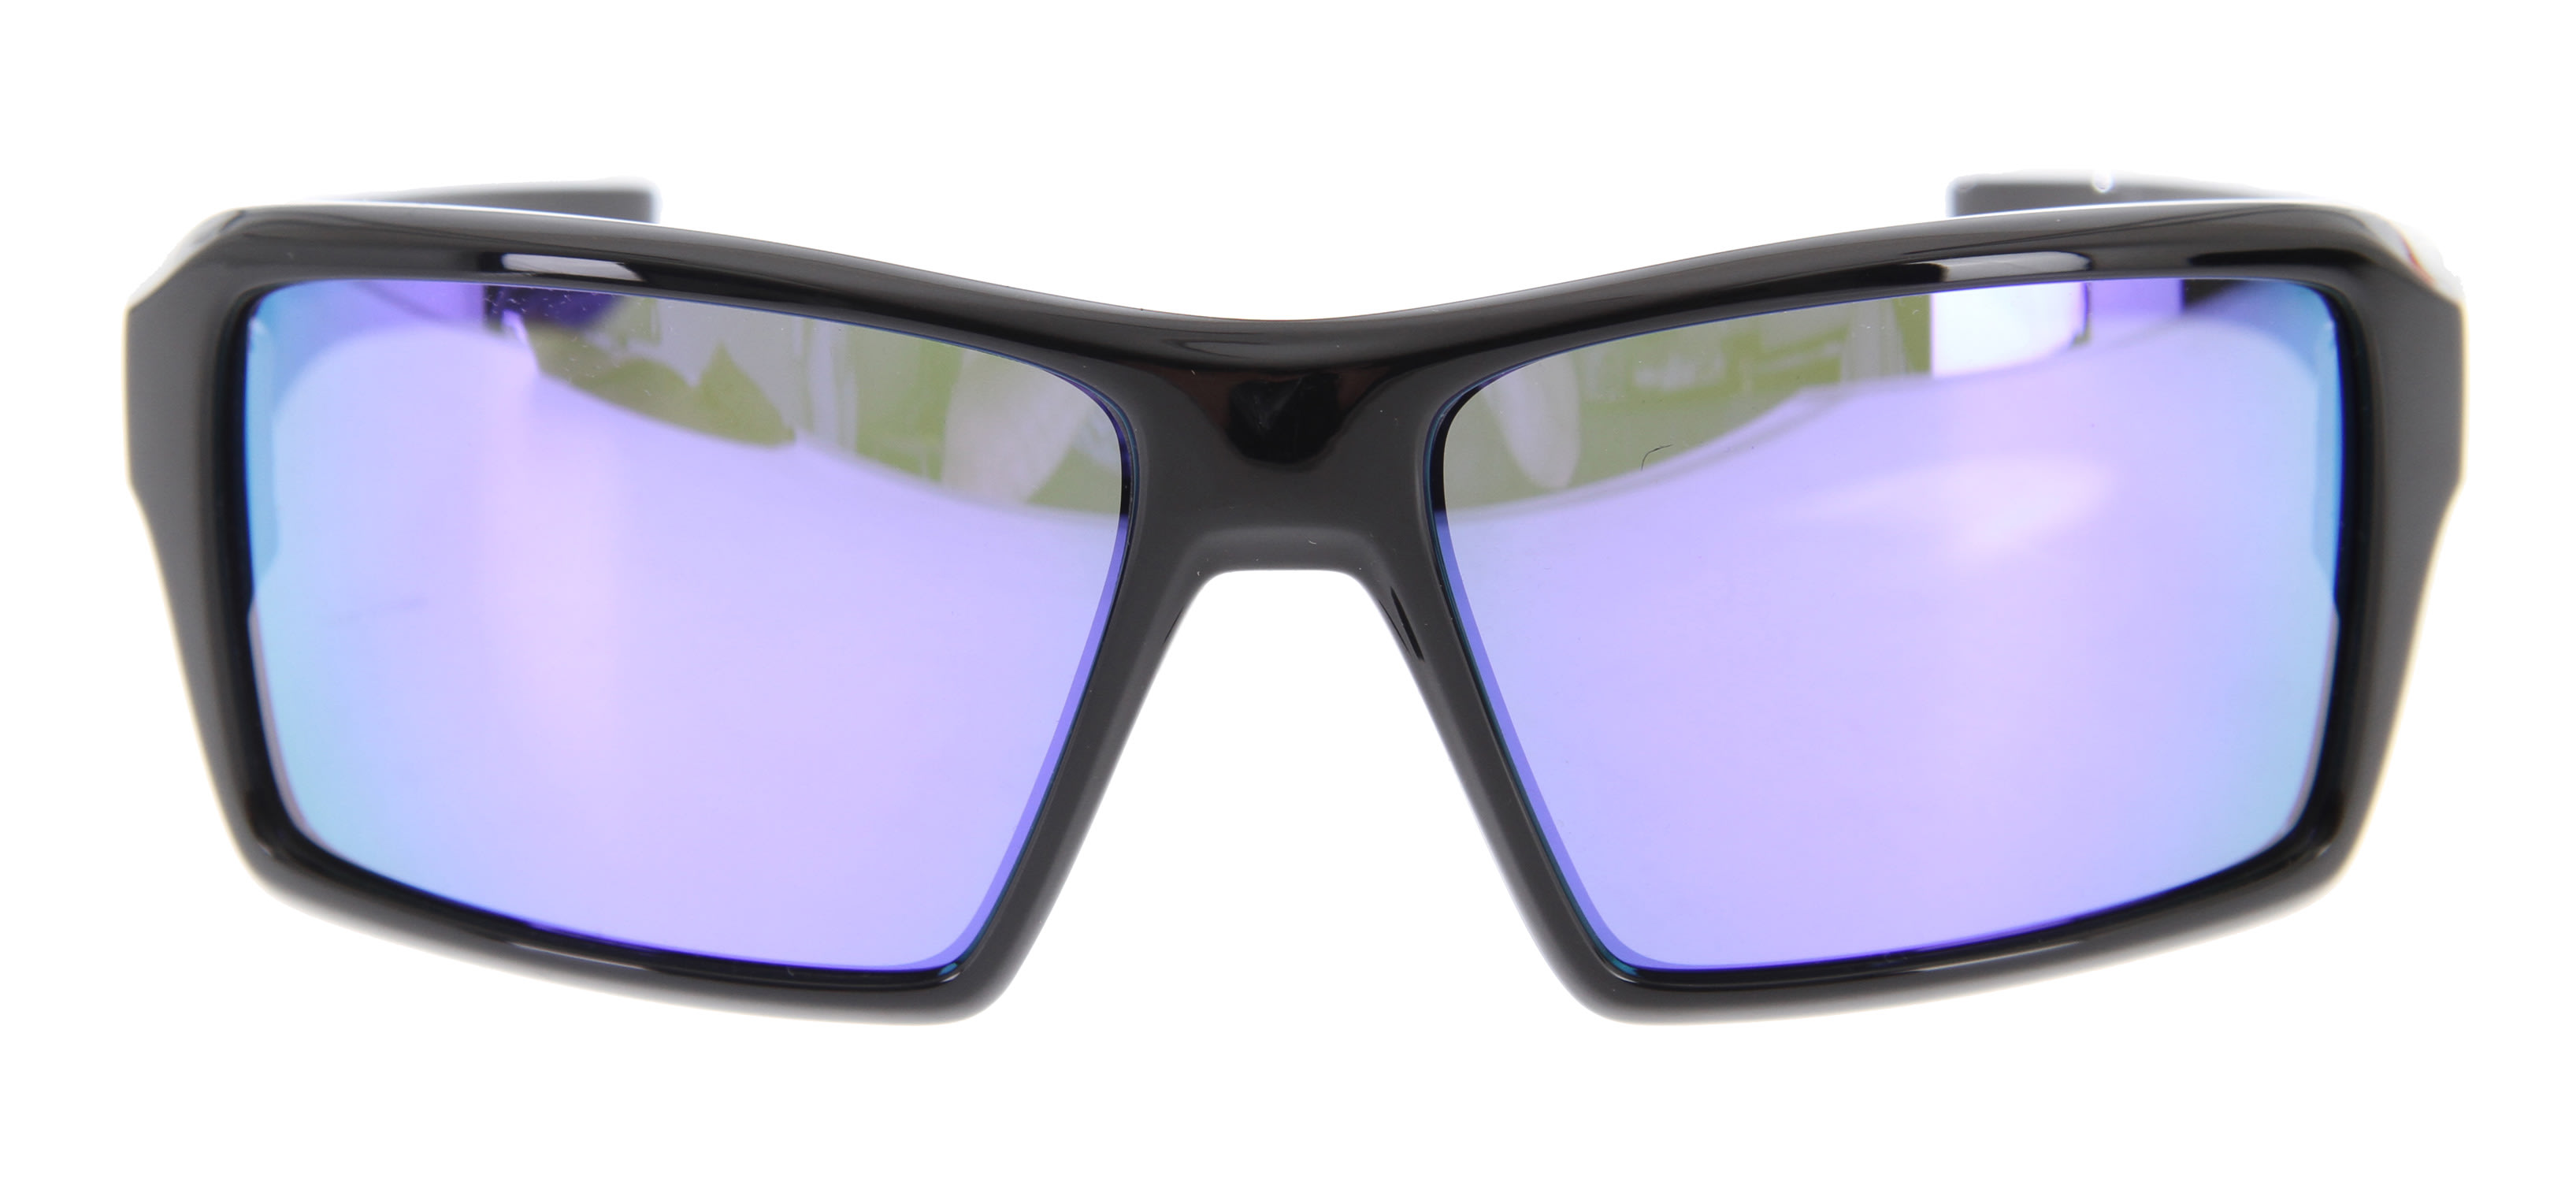 436f146e6b Oakley Eyepatch 2 Sunglasses - thumbnail 3